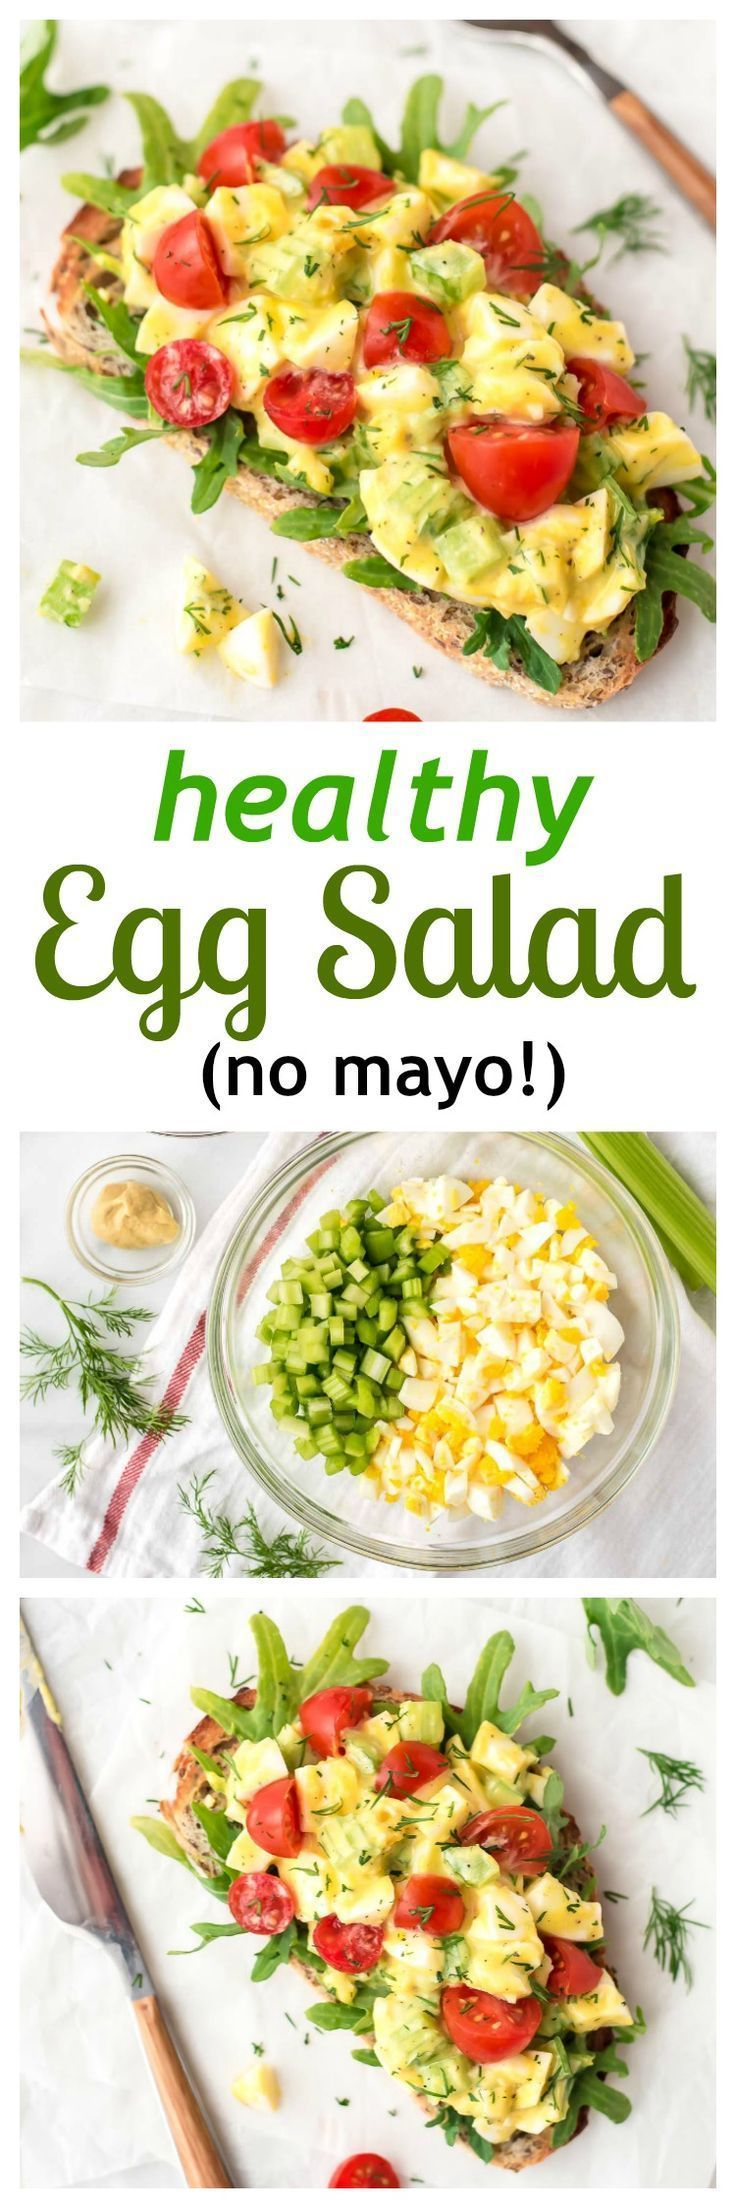 Healthy Egg Salad (mayo-free) — Cool, creamy, and delicious egg salad with crunchy celery, fresh dill, and Greek yogurt. Great for sandwiches for an easy lunch or dinner! Get the recipe at http://wellplated.com /wellplated/